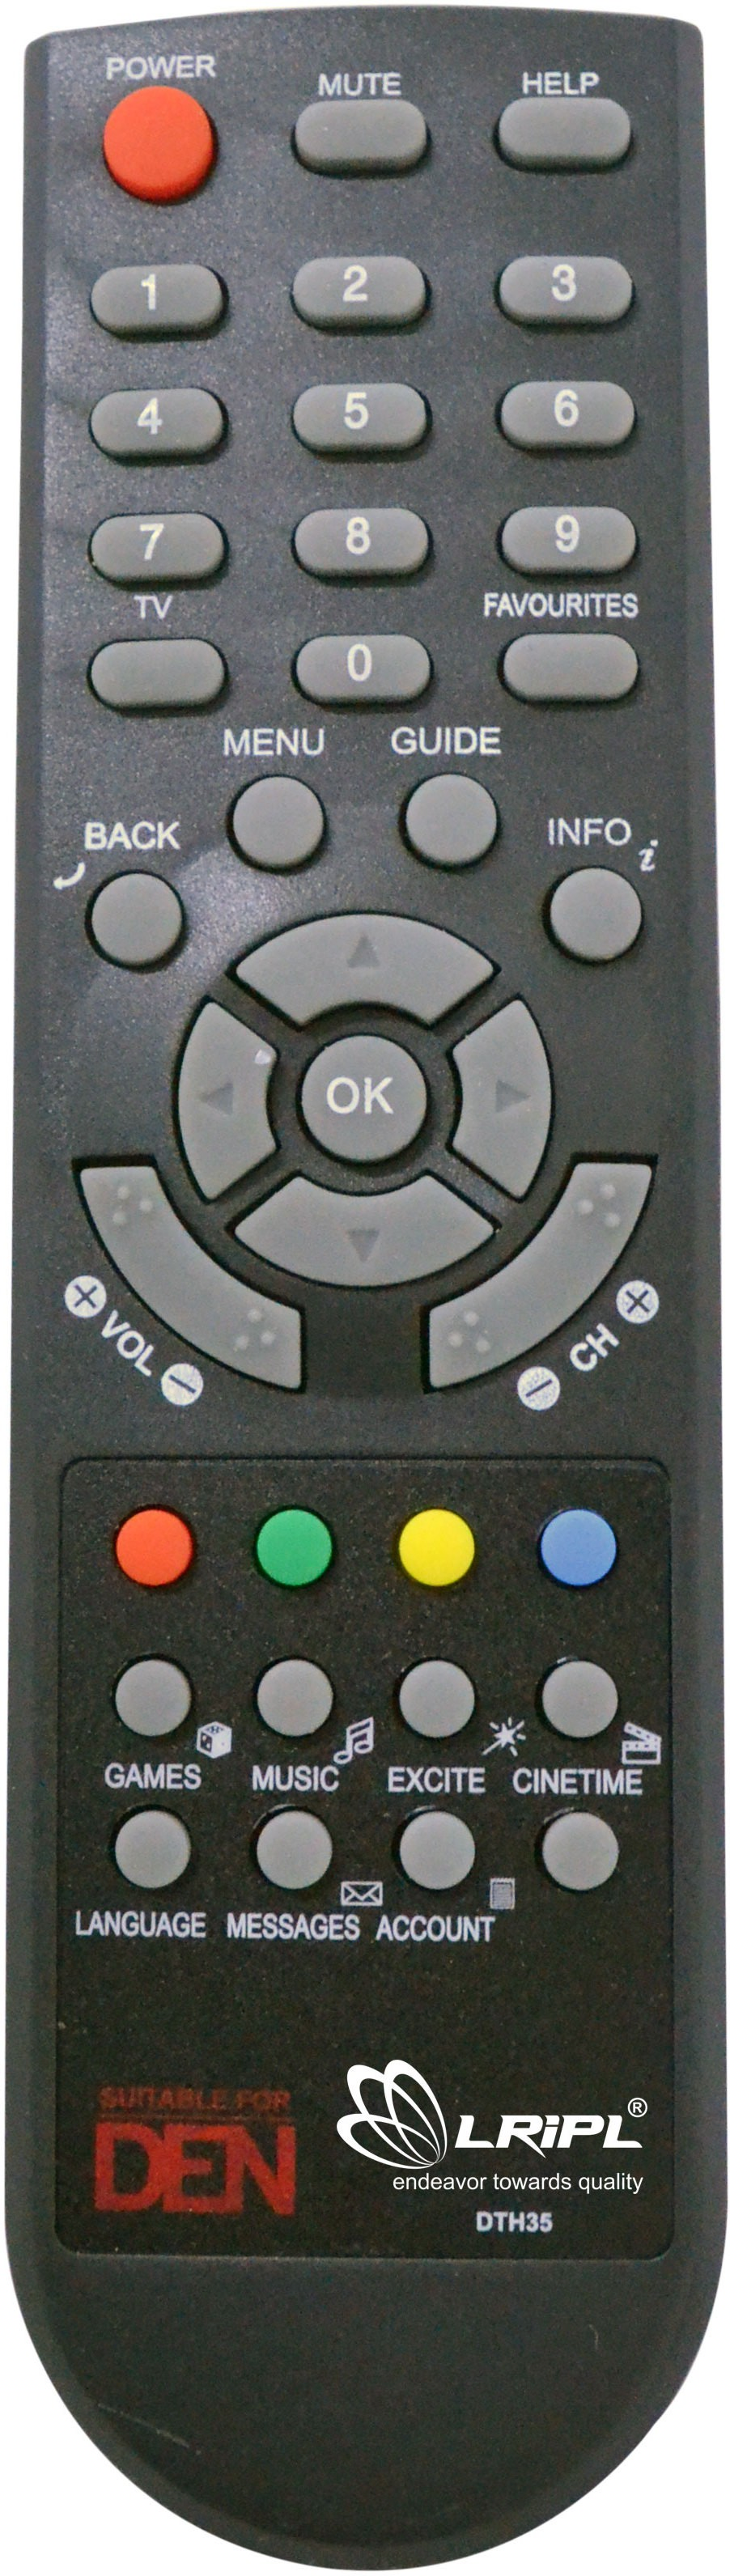 Den Set Top Box Remote Control App For Android - Somurich com